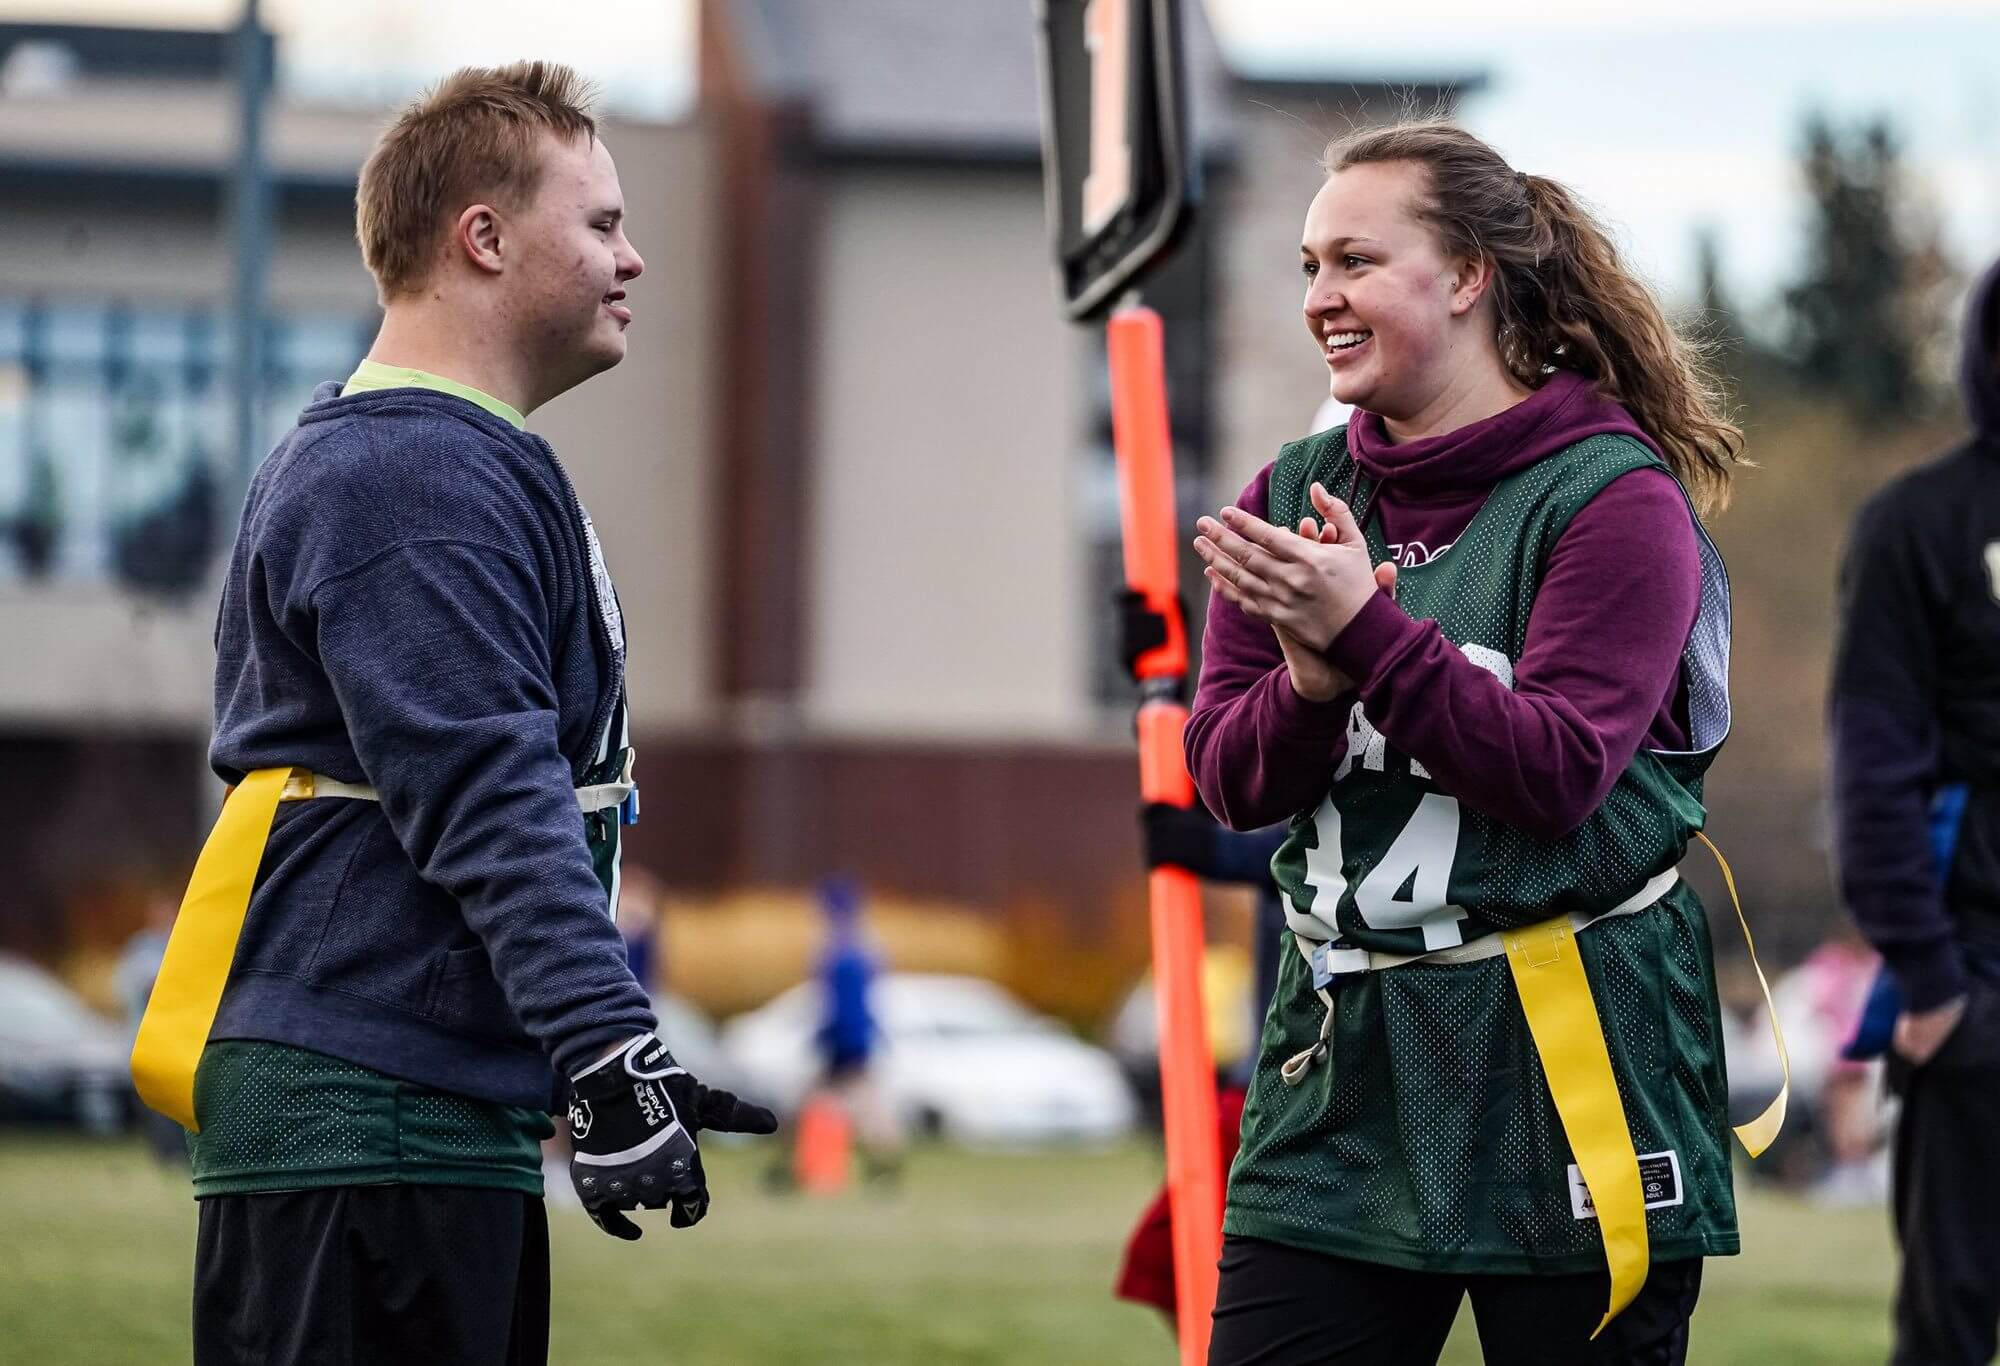 Students from Colorado State University participating in Unified Flag Football.